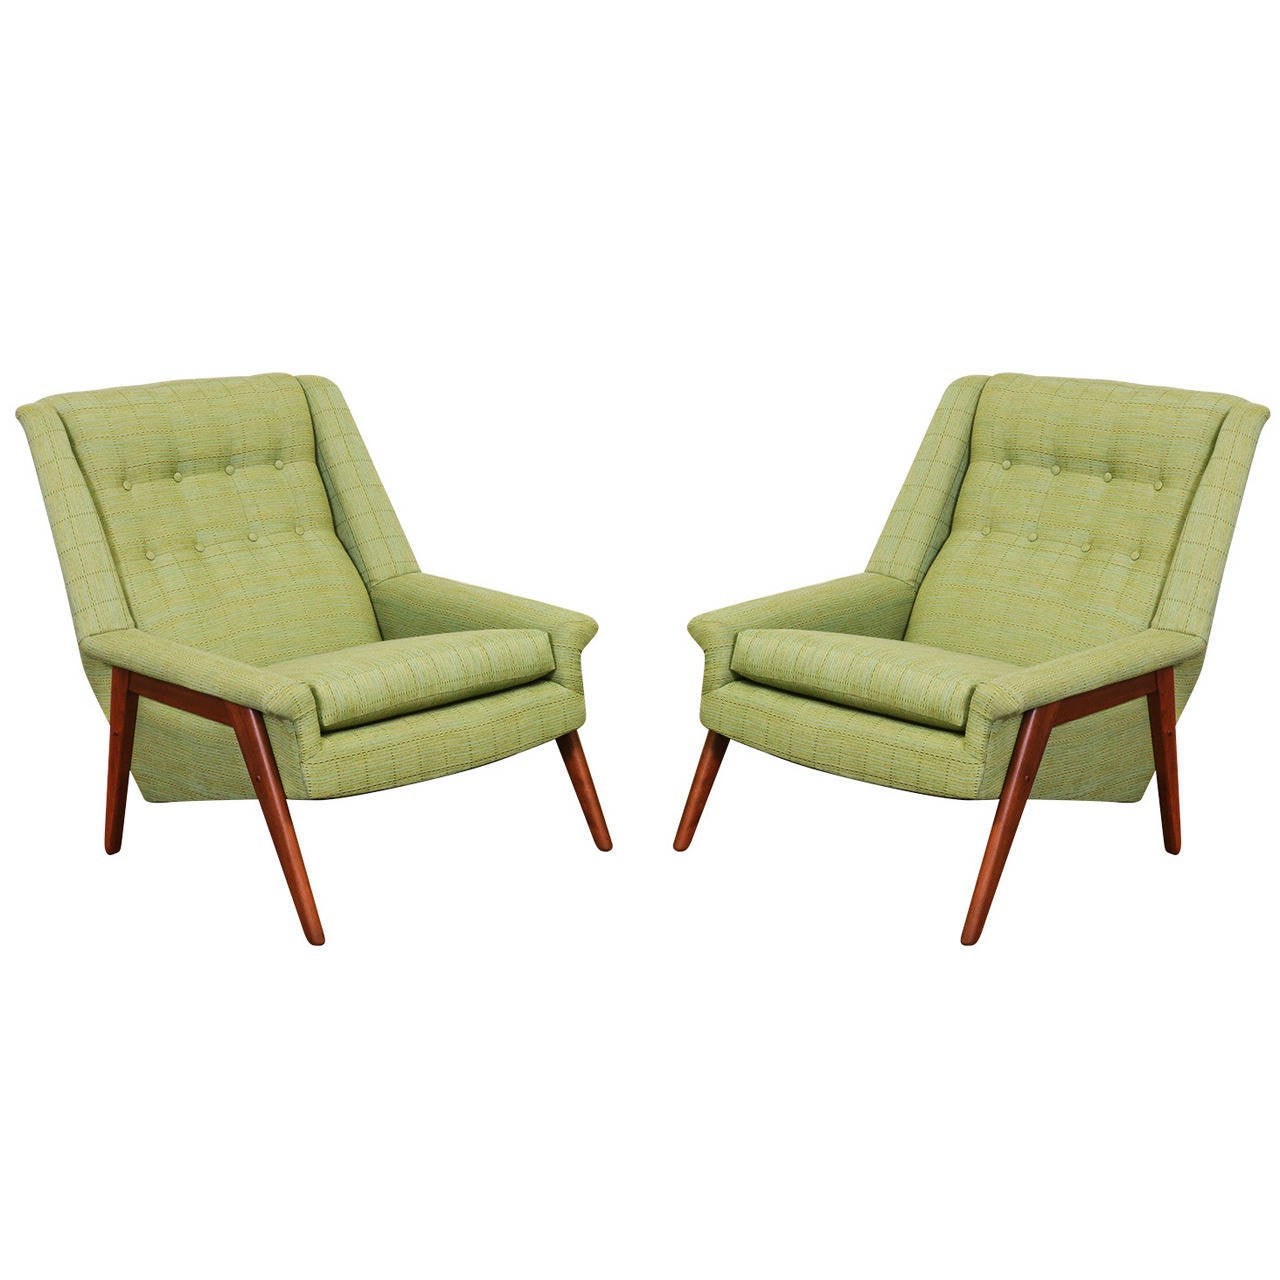 Mid century dux style lounge chairs at 1stdibs for Mid century style furniture